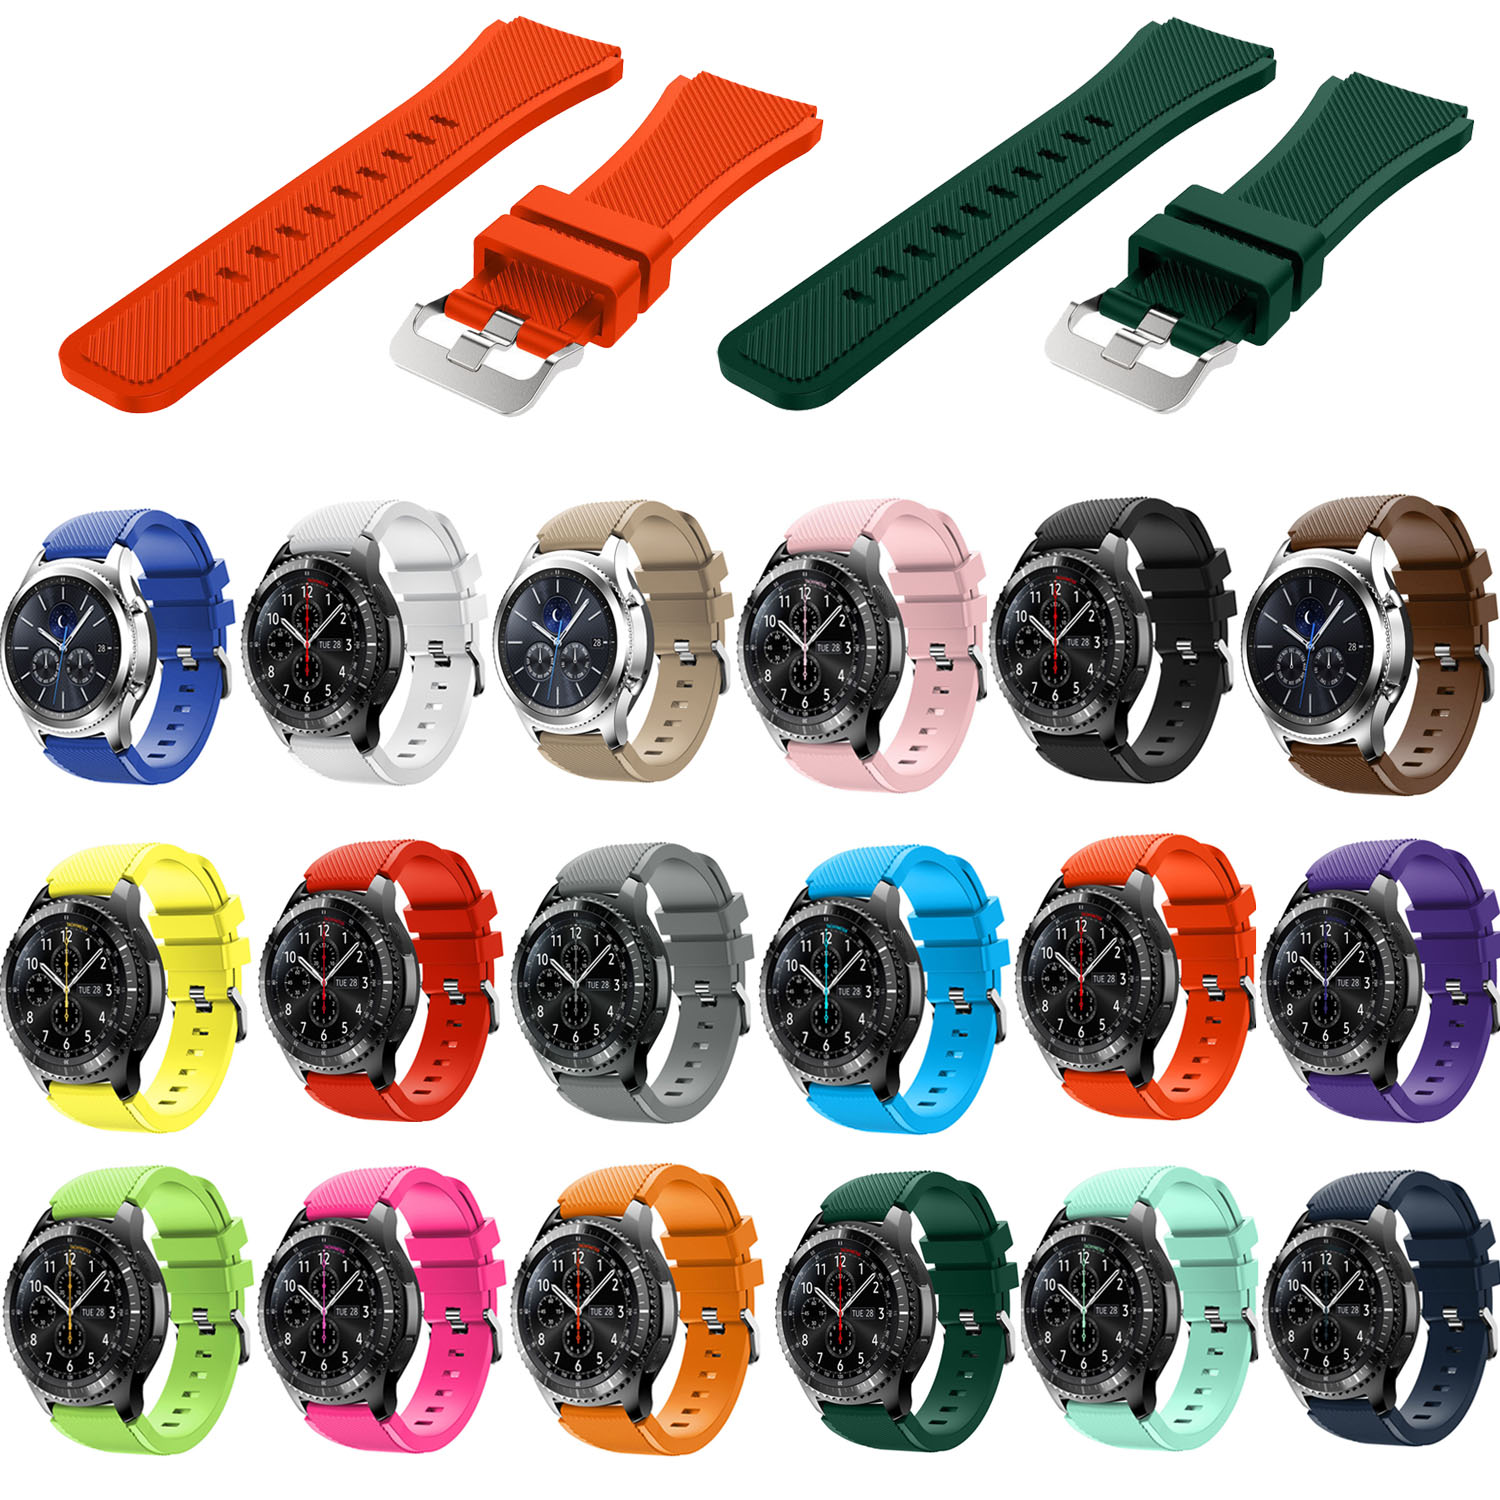 Hot Sale 22mm Sports Silicone Strap for Samsung Gear S3 Frontier Band for Gear S3 Classic Rubber Watchband Replacement Wristband crested sport silicone strap for samsung gear s3 classic frontier replacement rubber band watch strap for samsung gear s3